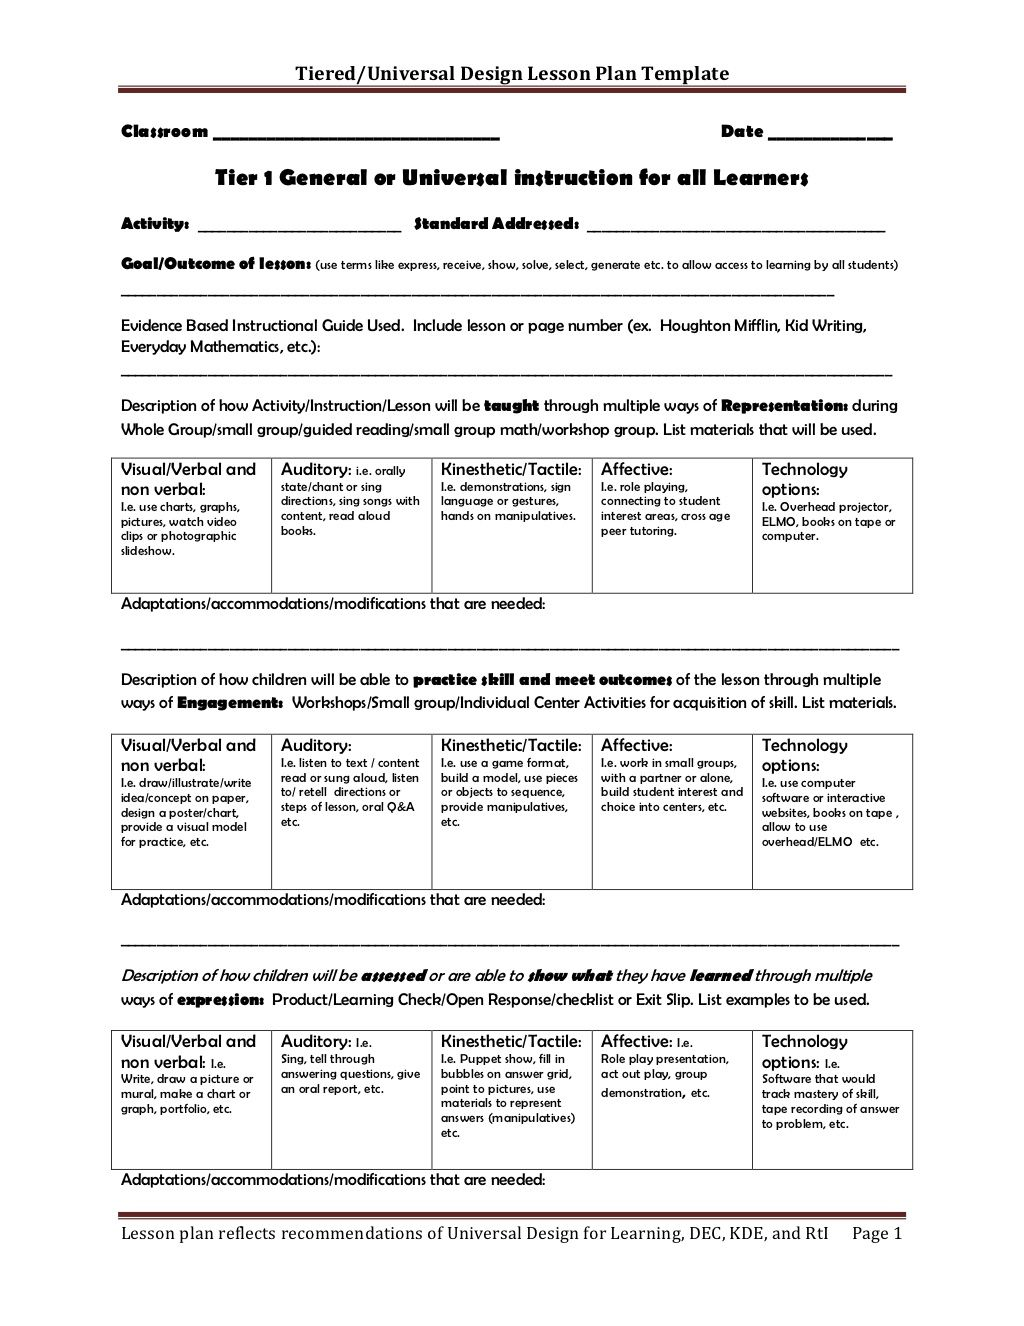 Tiered Lesson Plan Template Lesson Plan Templates Udl Lesson Plans Differentiated Instruction Lesson Plans